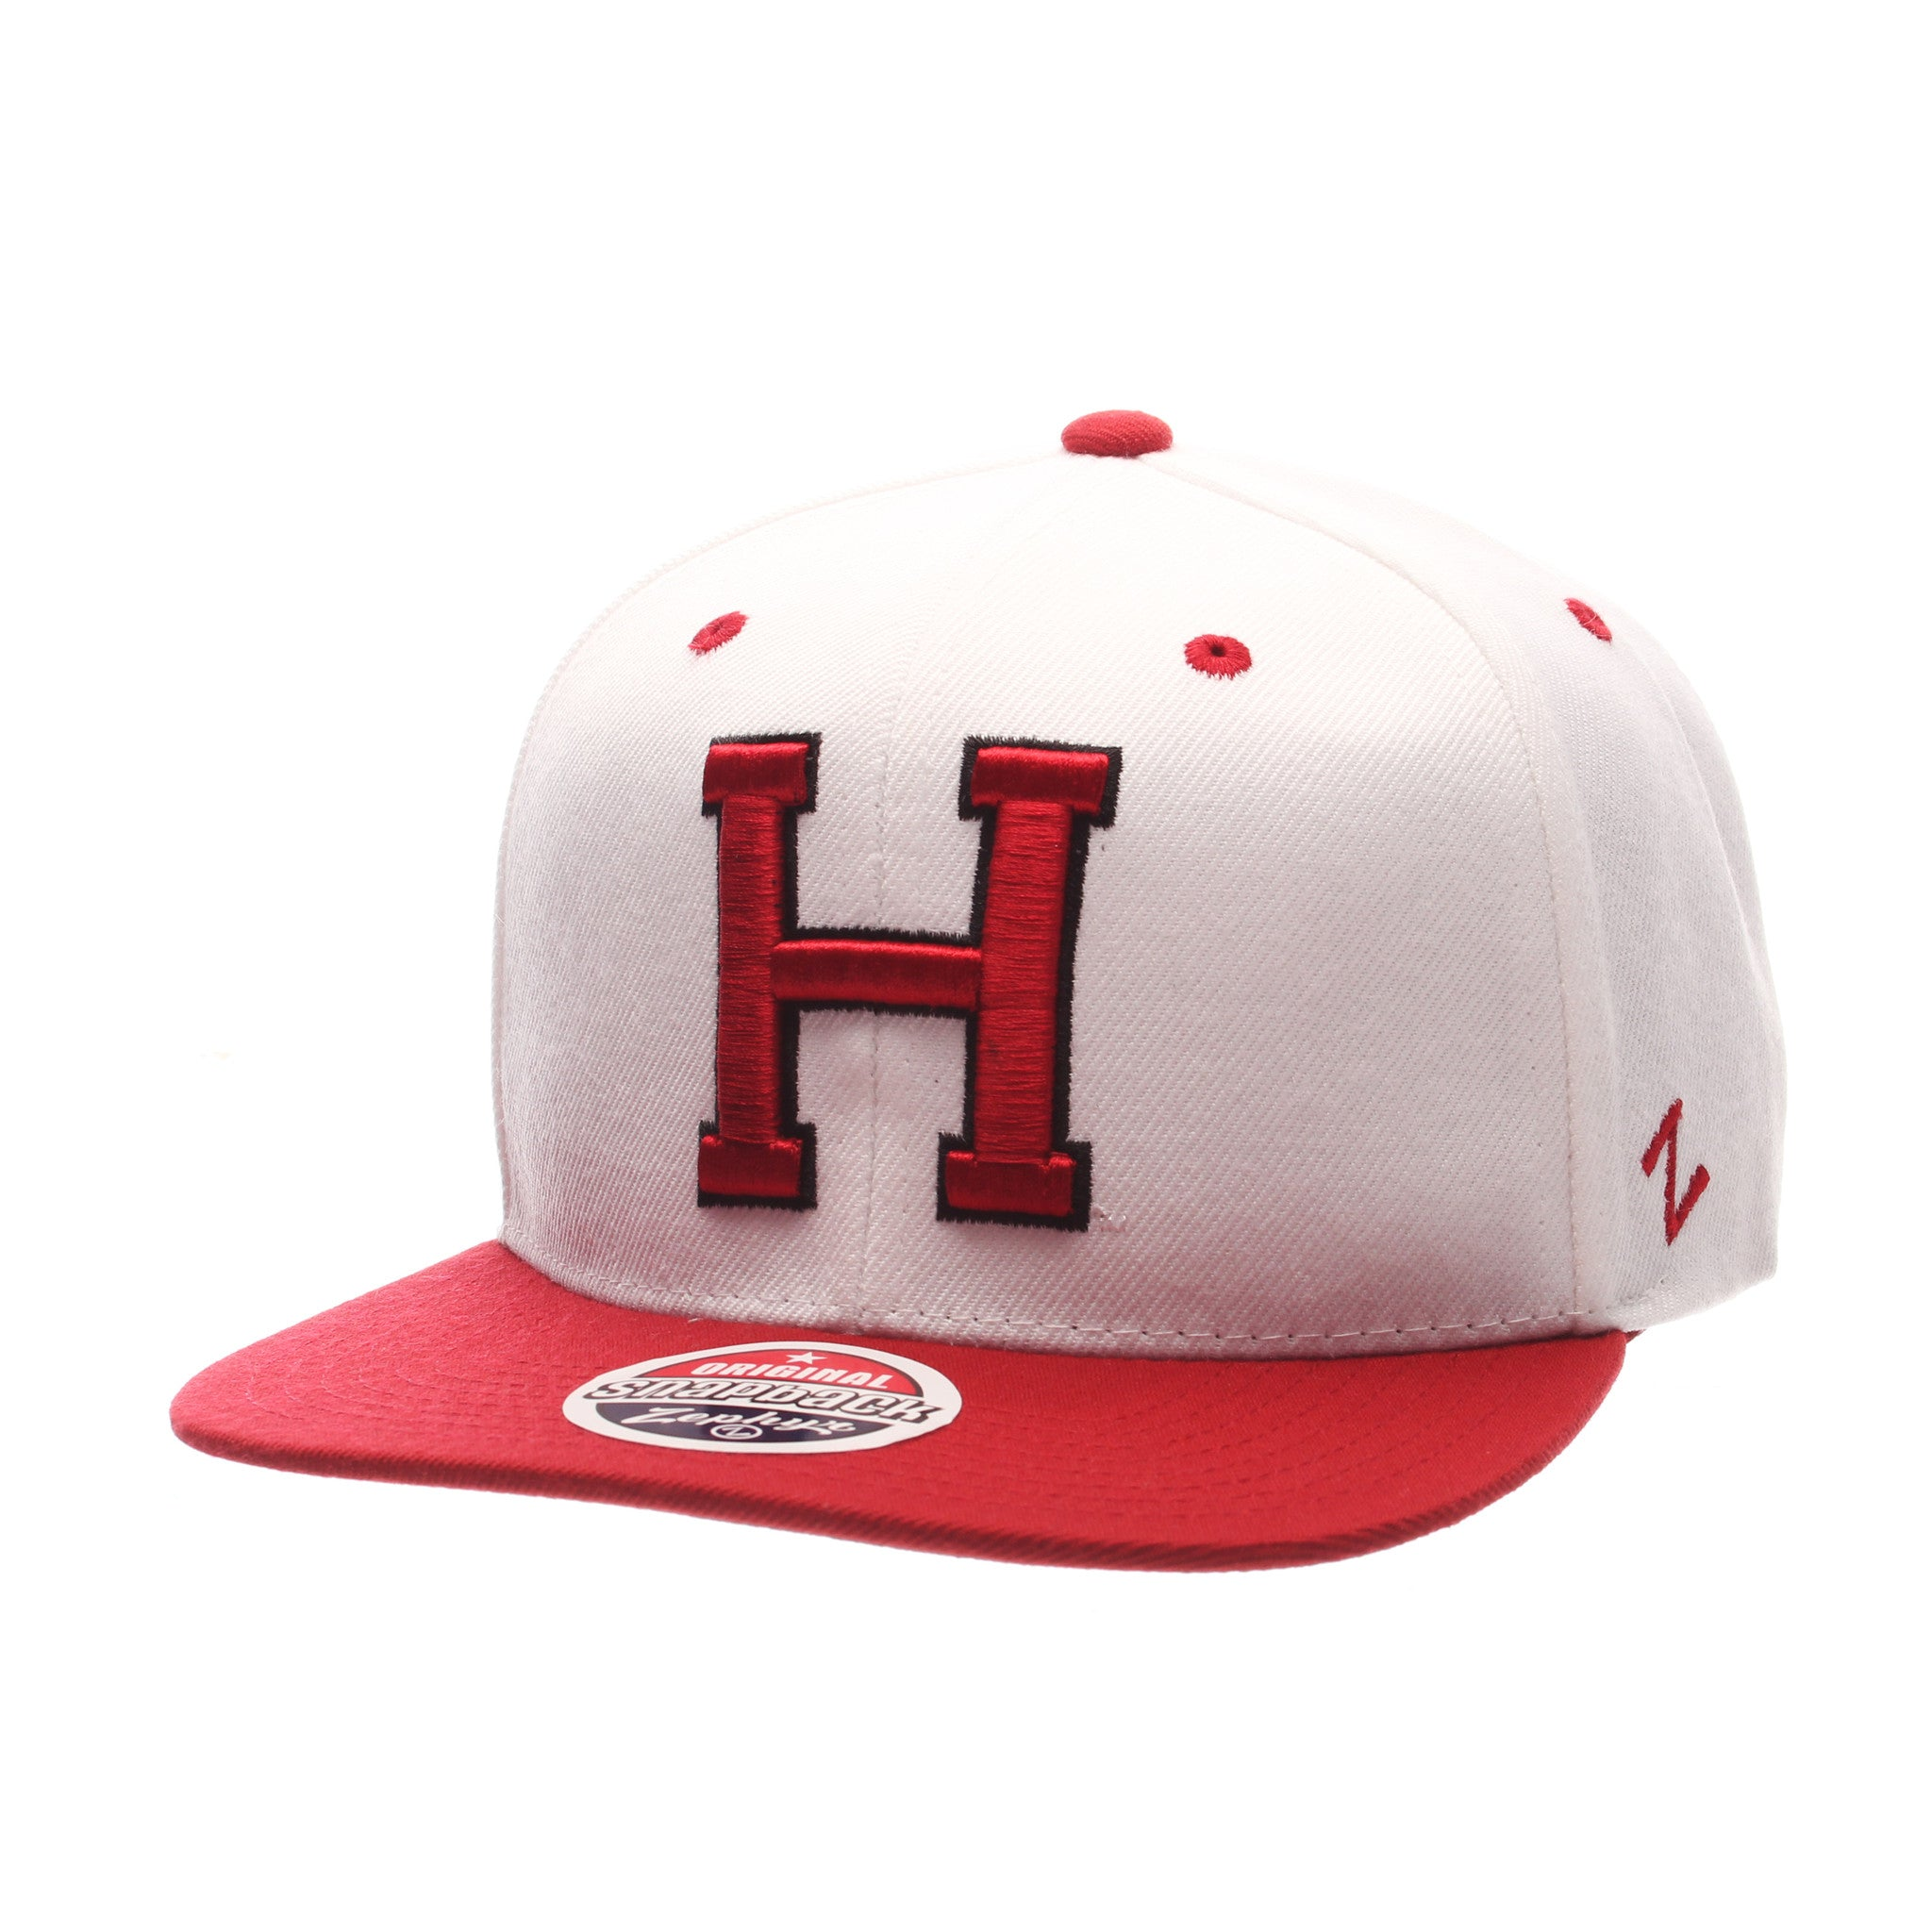 Harvard University Z11 32/5 (High) (H) White Zwool Adjustable hats by Zephyr